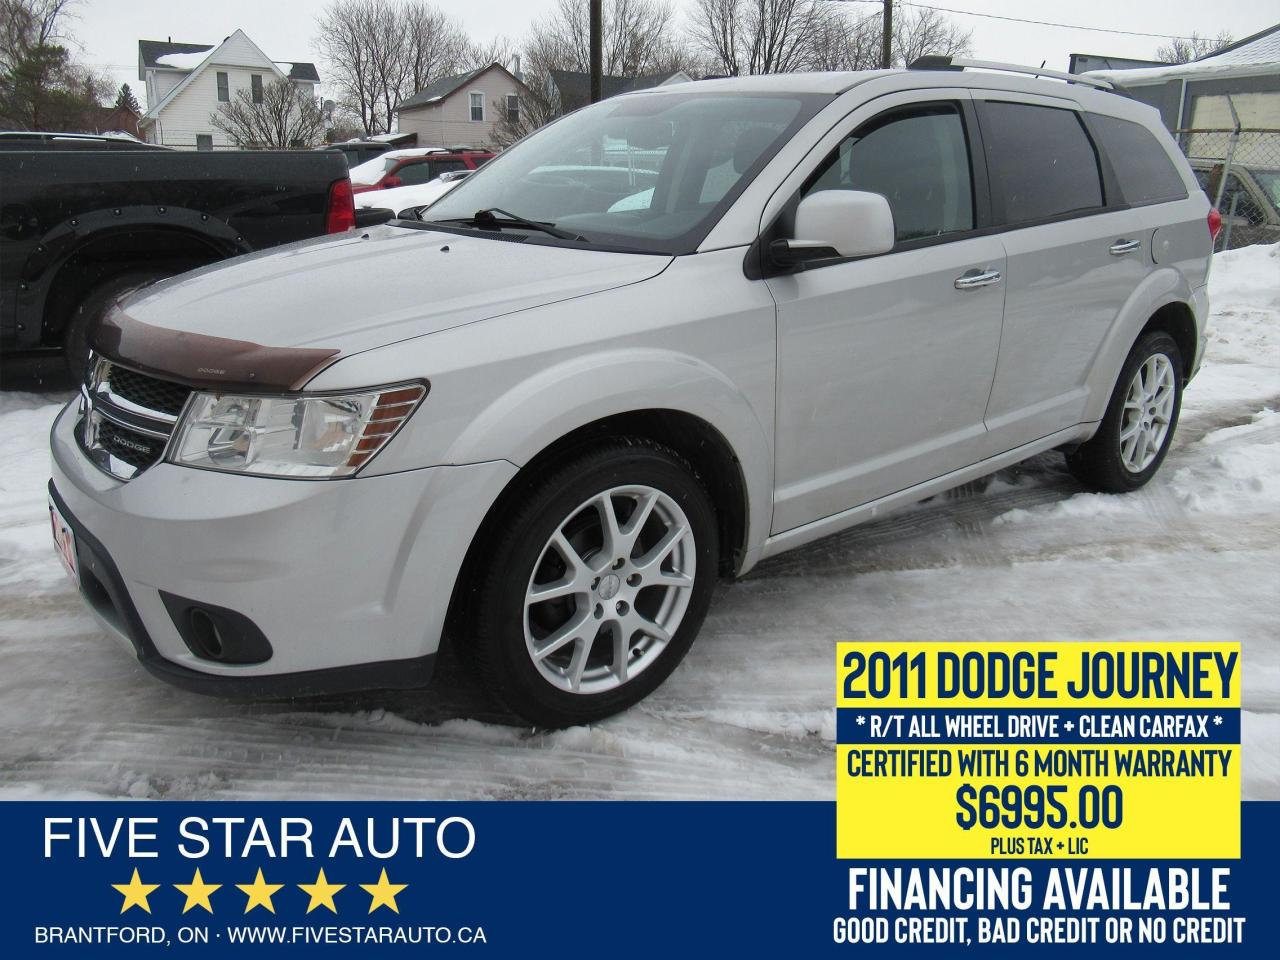 2011 Dodge Journey R/T AWD *Clean Carfax* Certified + 6 Mth Warranty